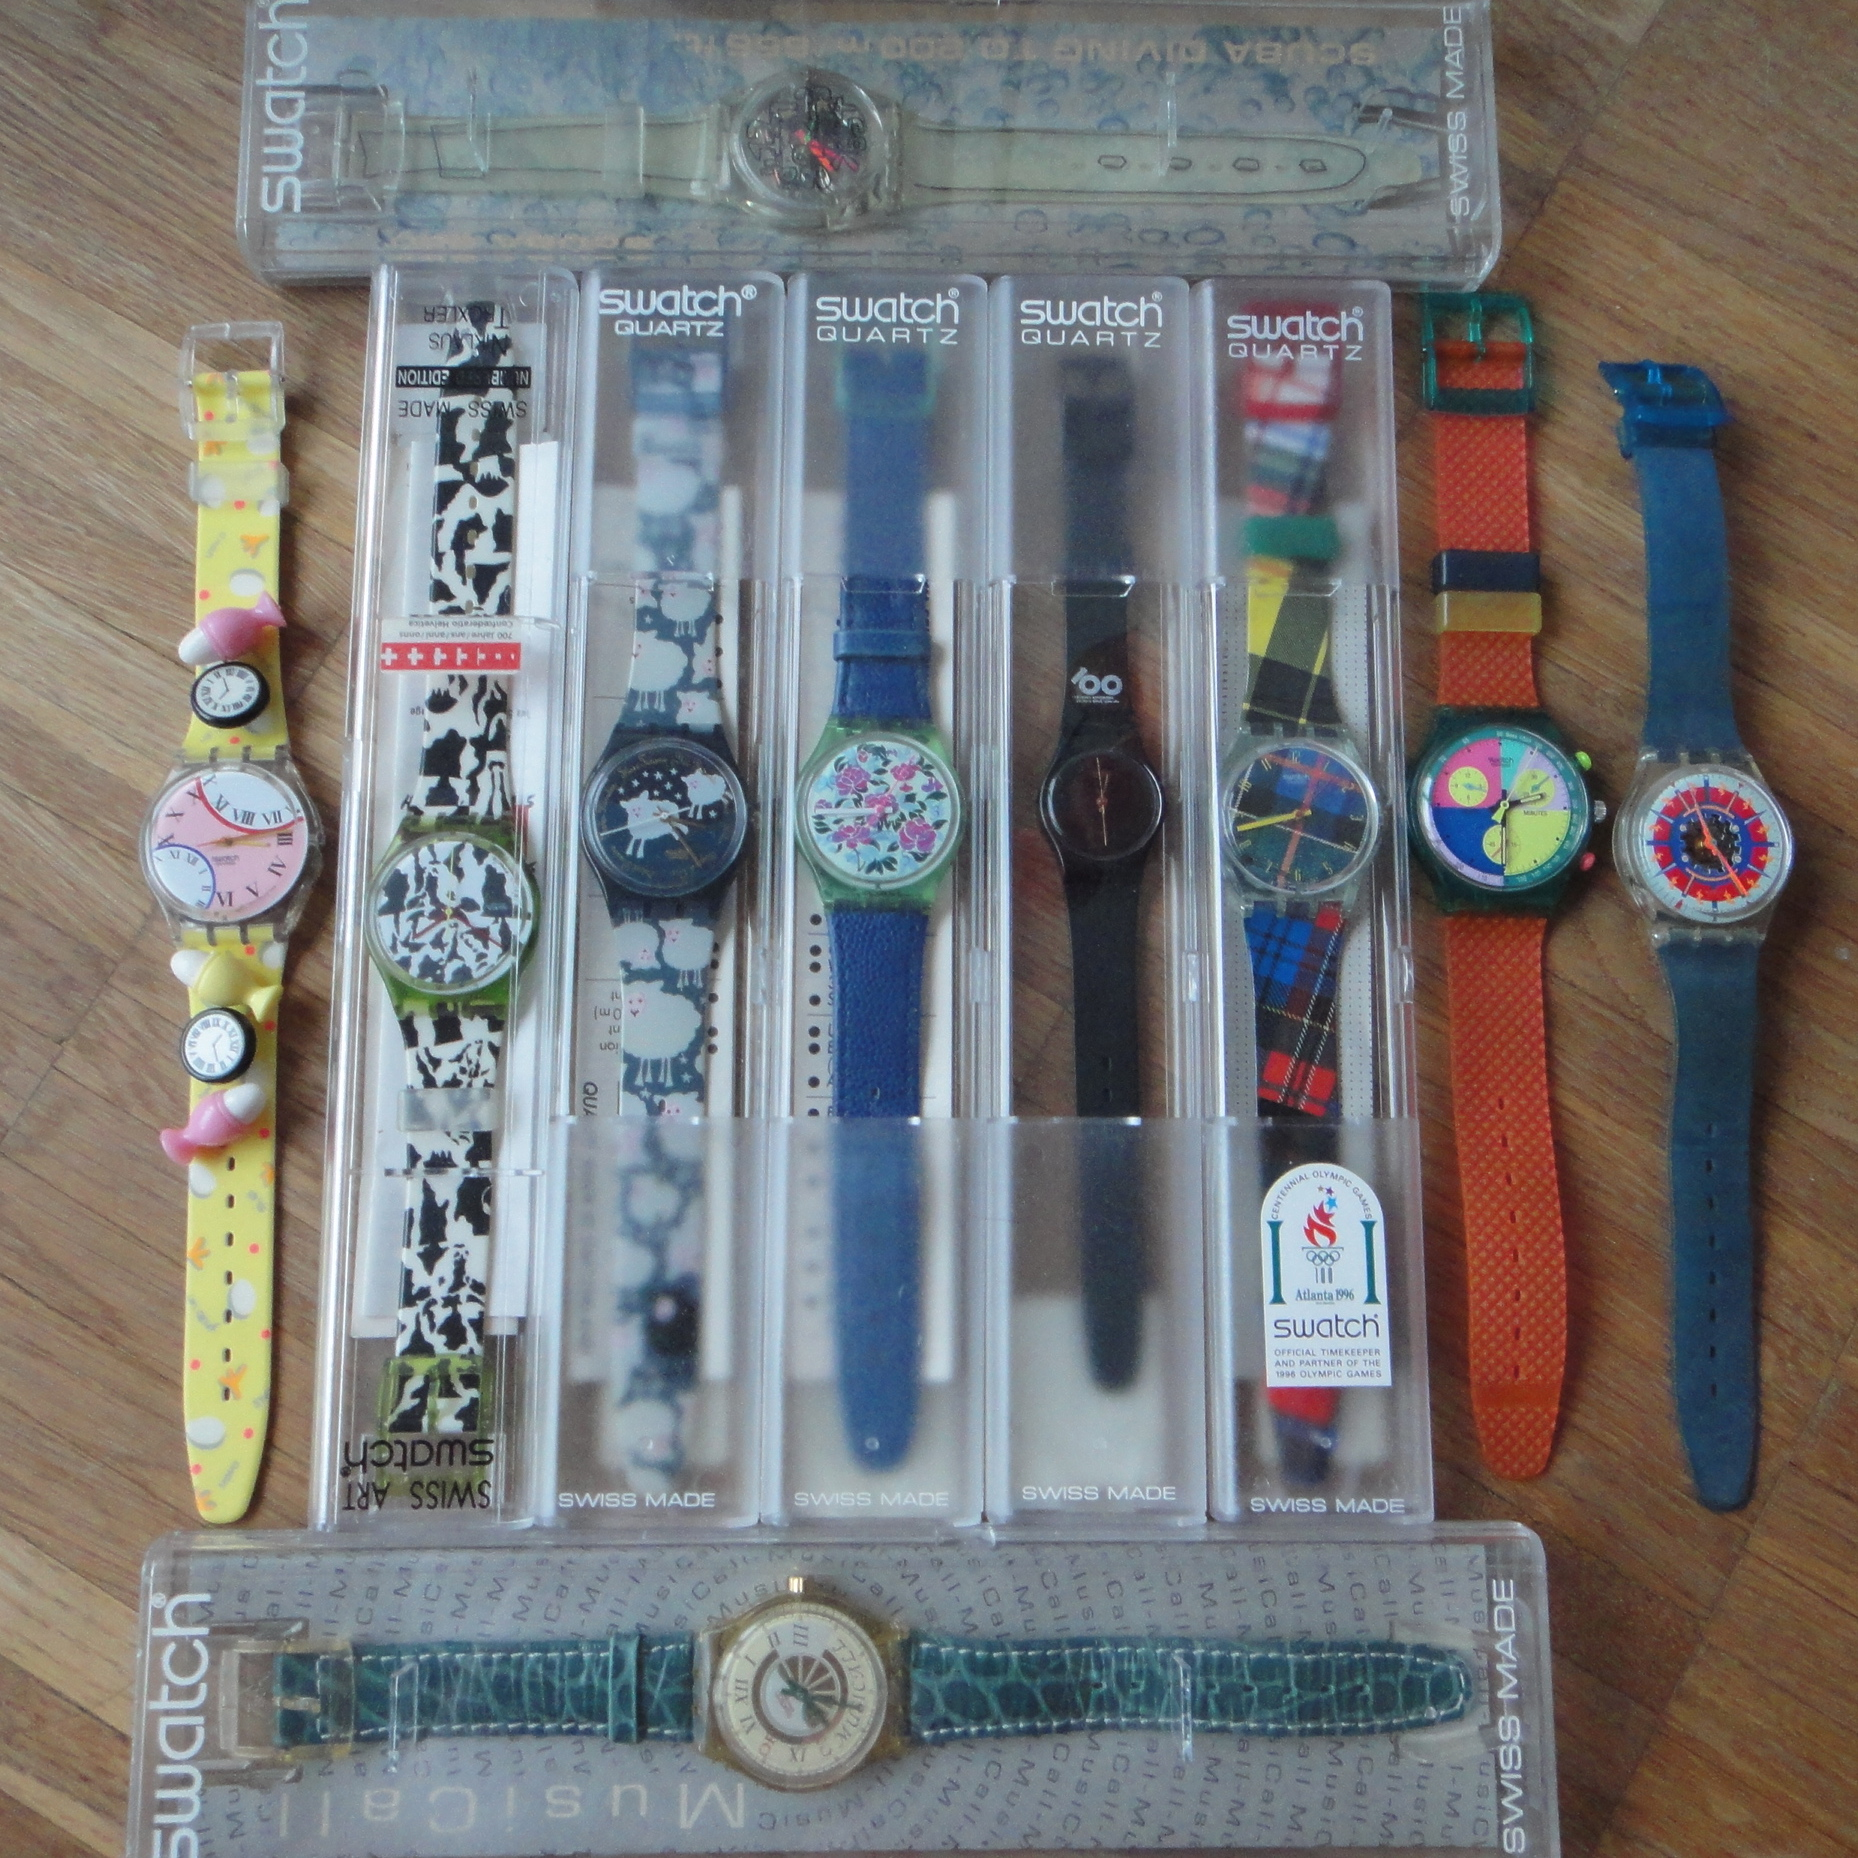 some long lost swatch watches